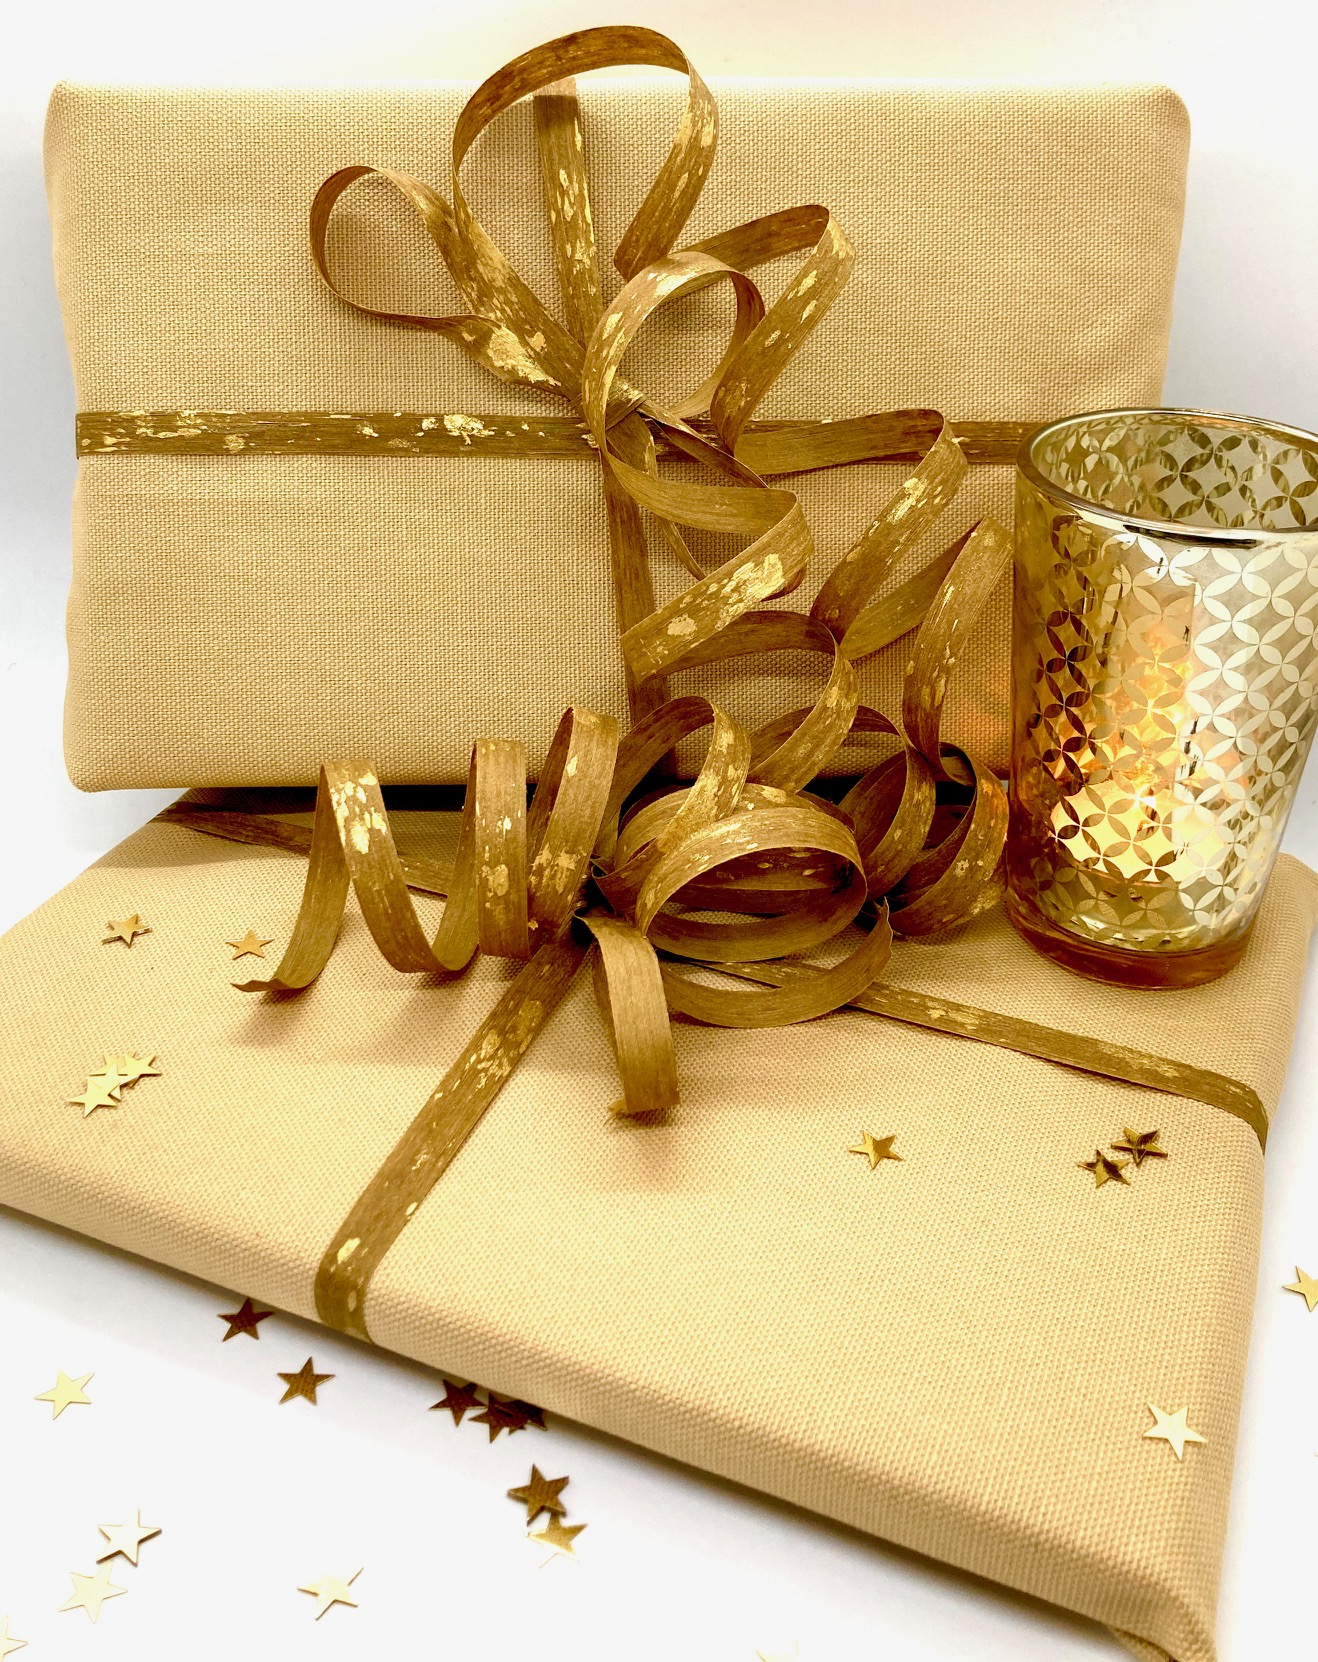 Advent ganz Gold (50x35cm, 60x45cm)